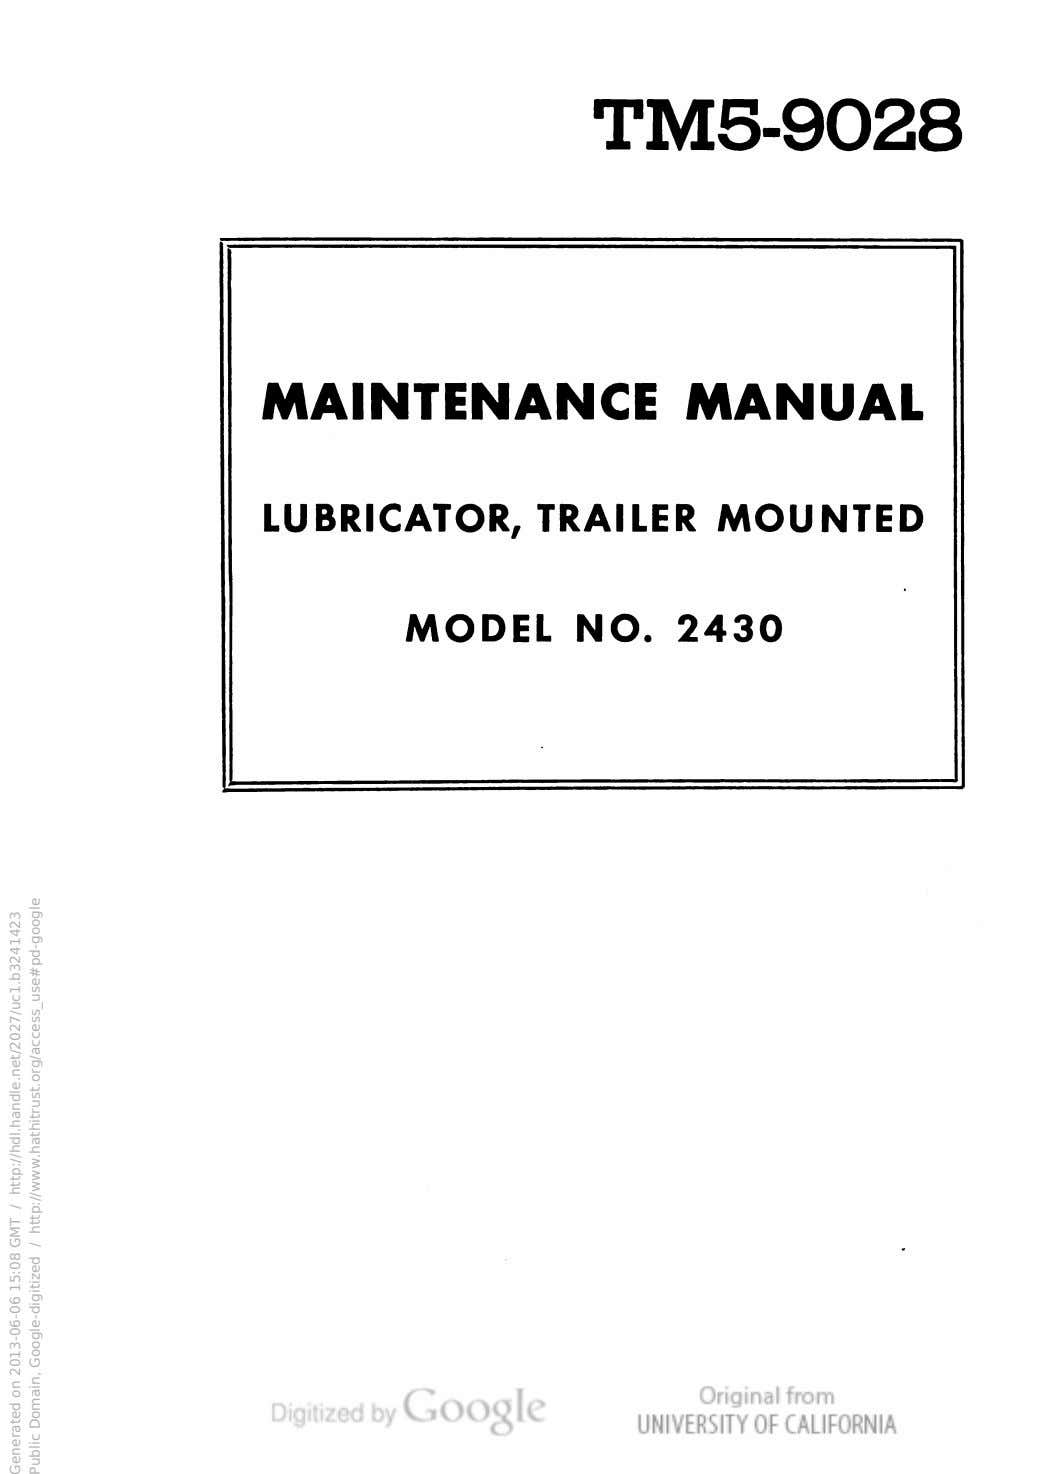 TM5-9028 MAINTENANCE MANUAL LUBRICATOR, TRAILER MOUNTED MODEL NO. 2430 Generated on 2013-06-06 15:08 GMT /